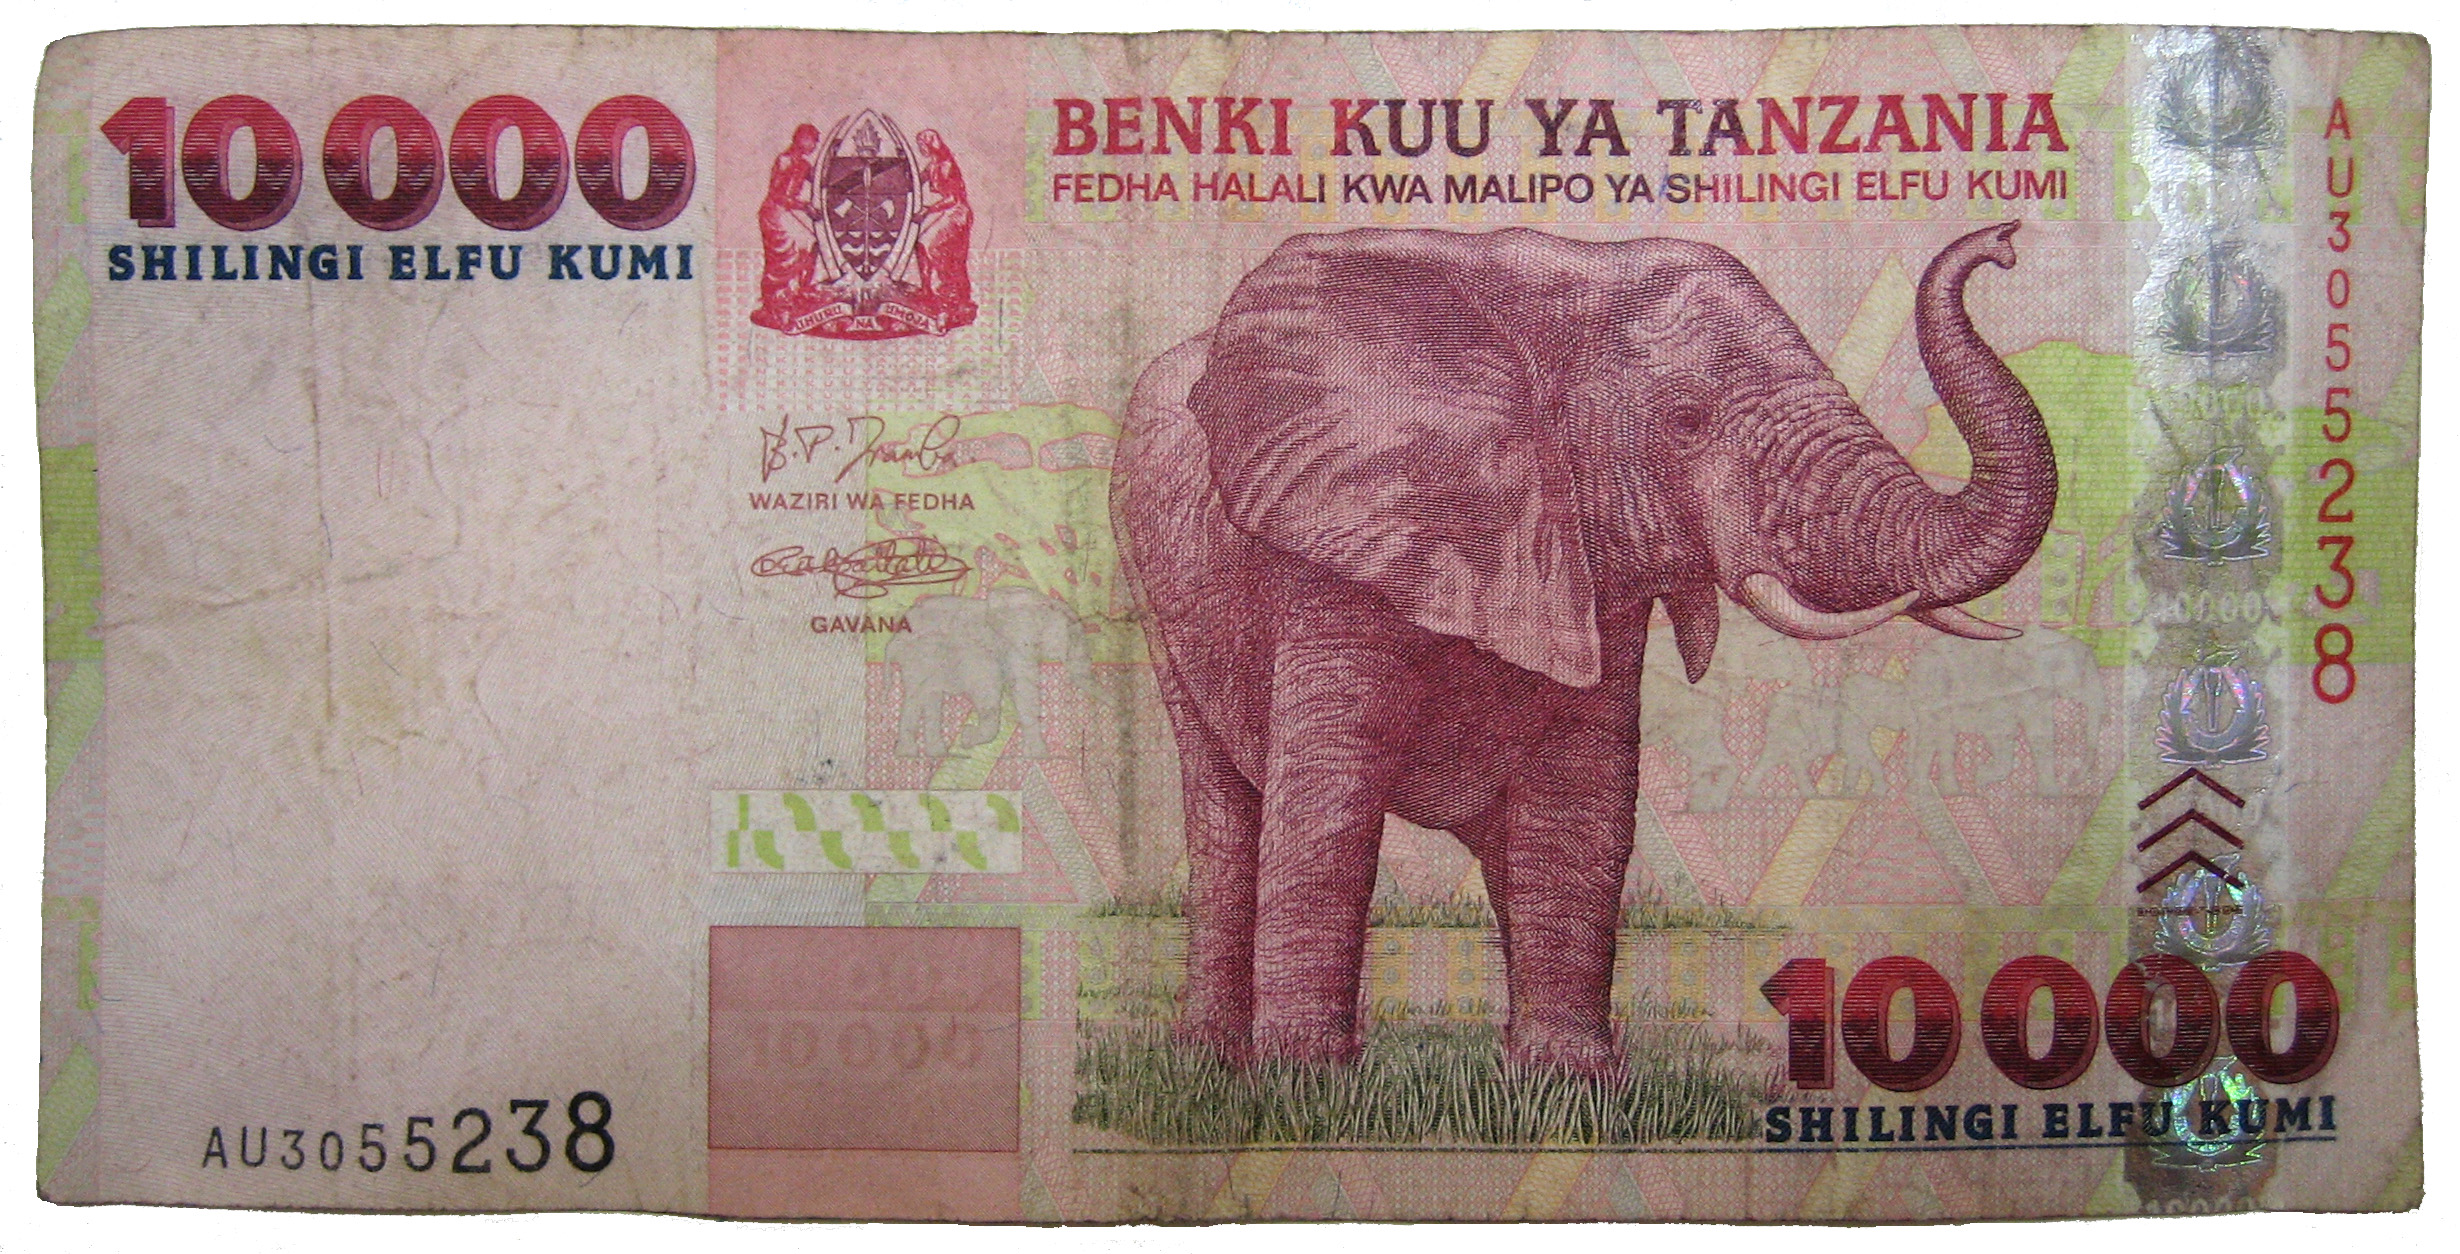 A currency bill with an elephant in Tanzania Shillings